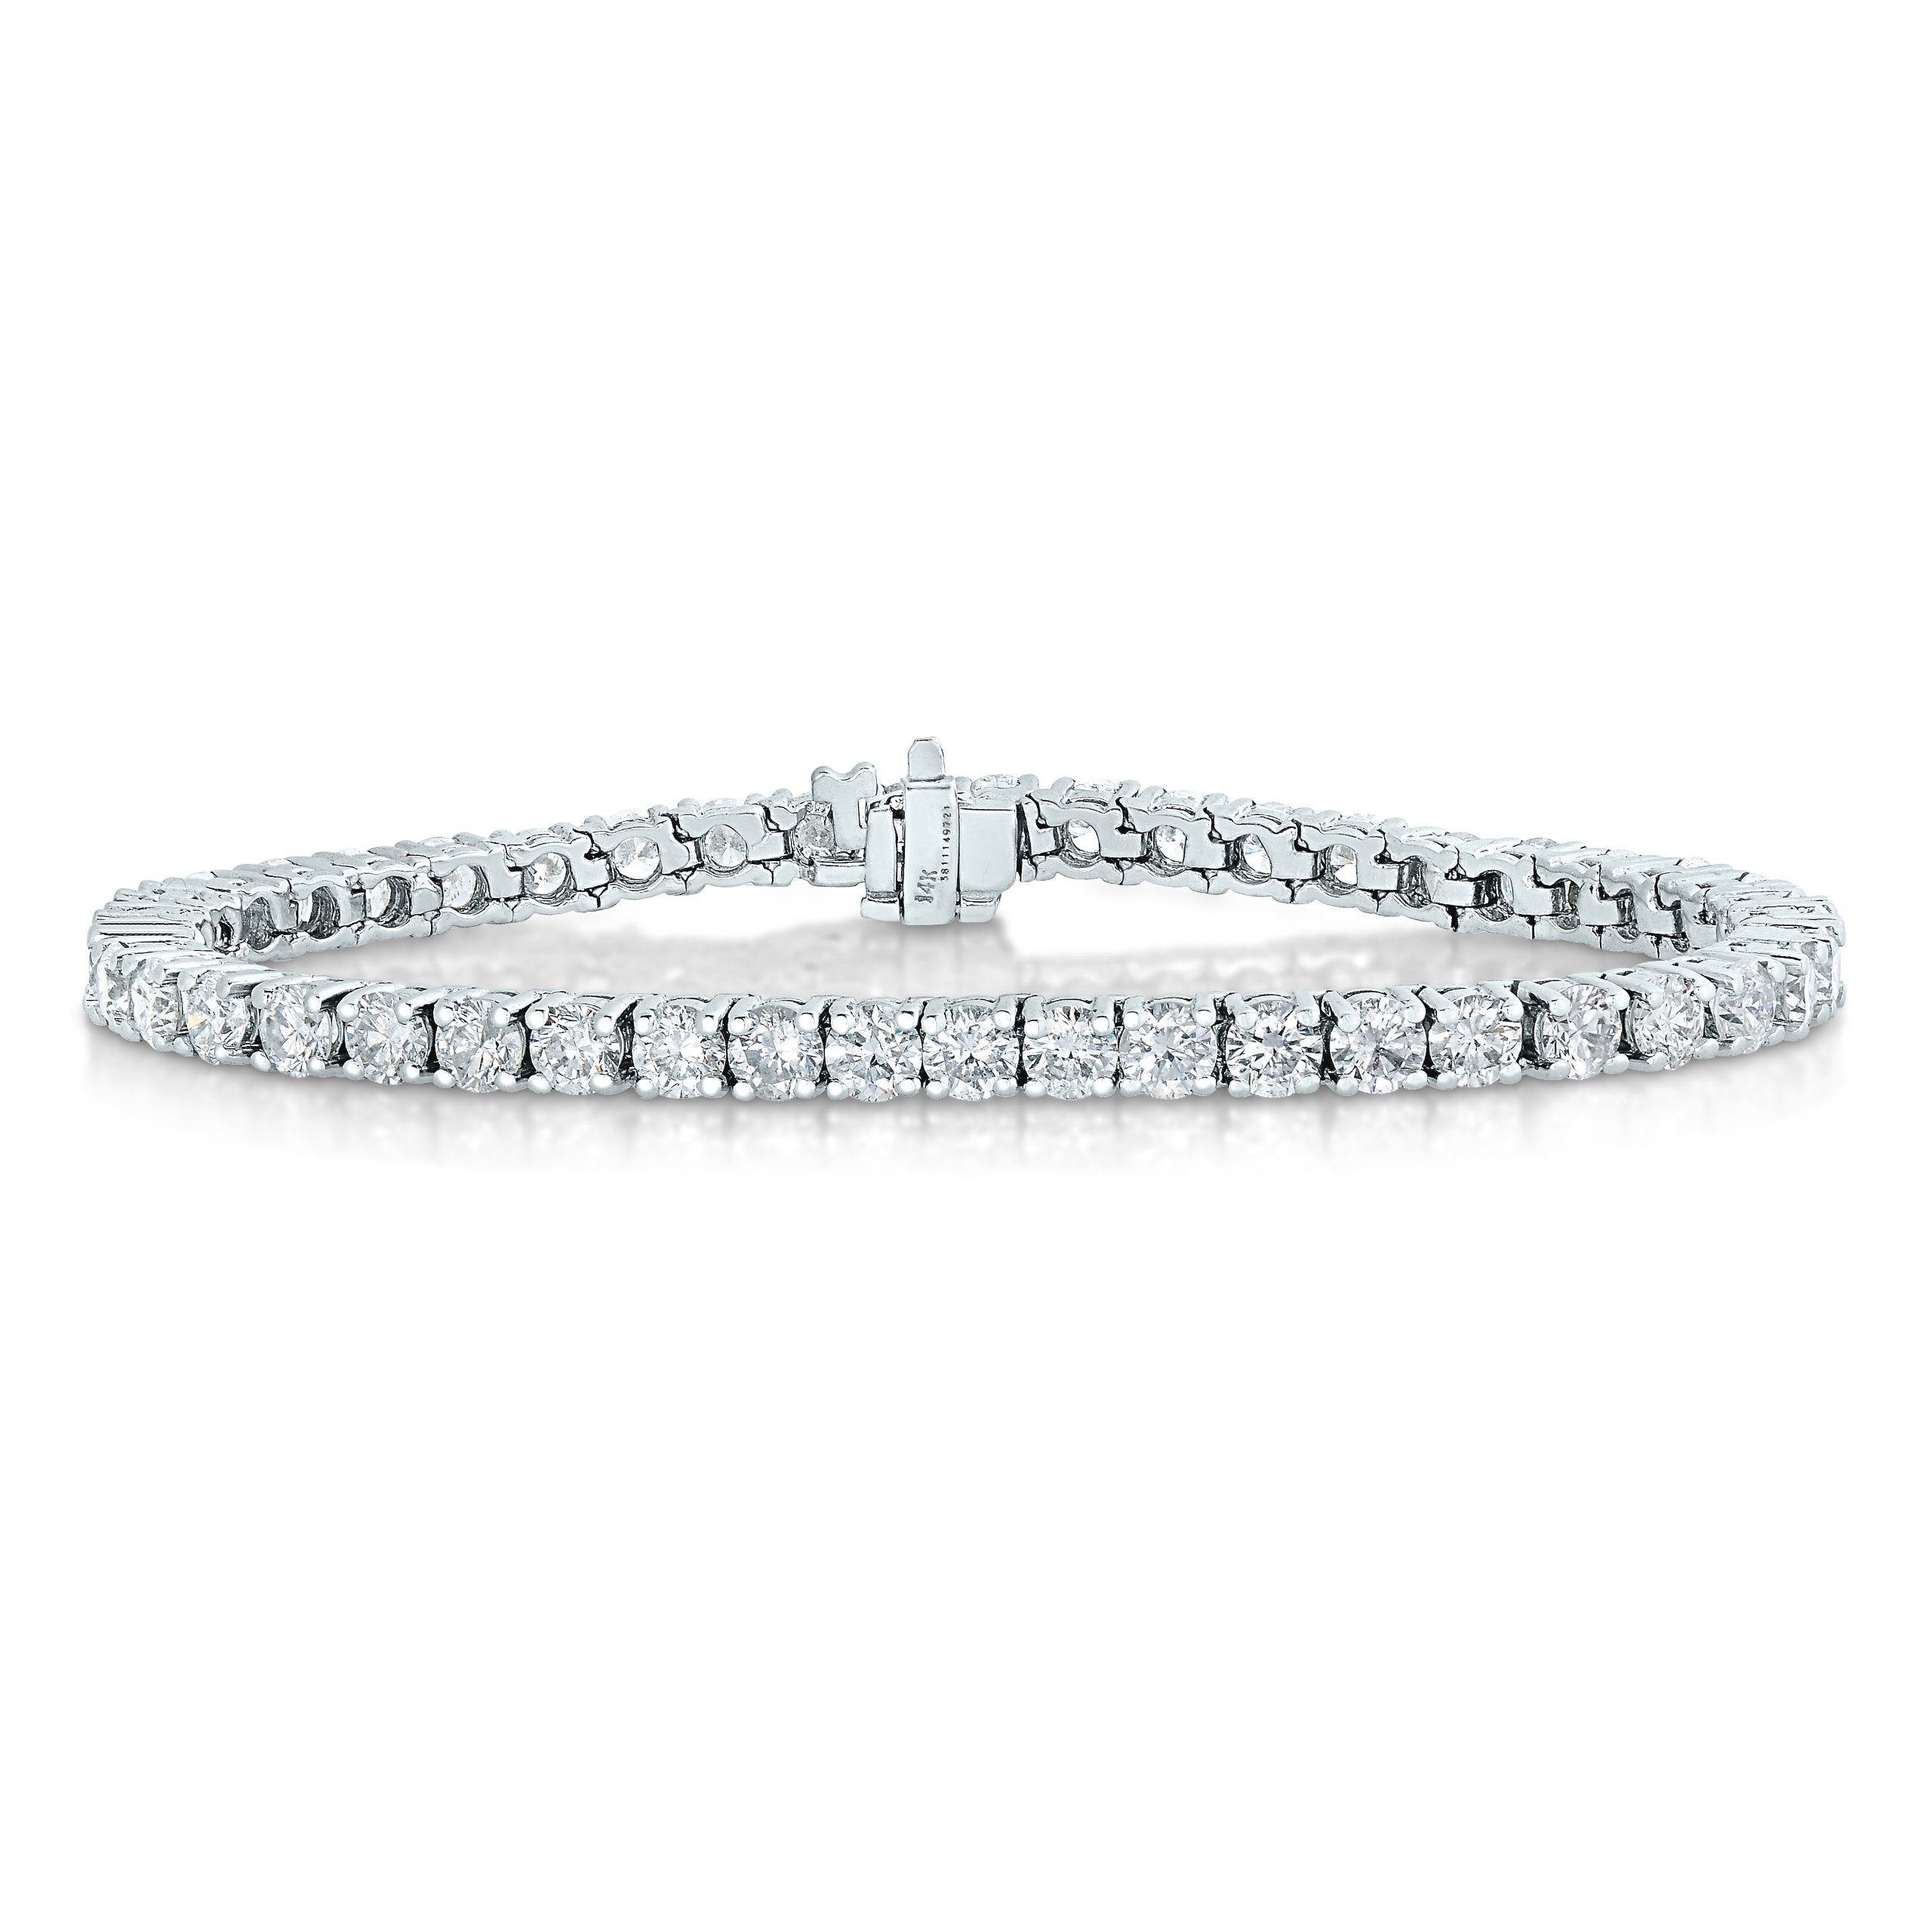 5 CT I1 IGI Certified Diamond Bracelet Tennis 14K White Gold (H-I) by Vir Jewels (Image #1)